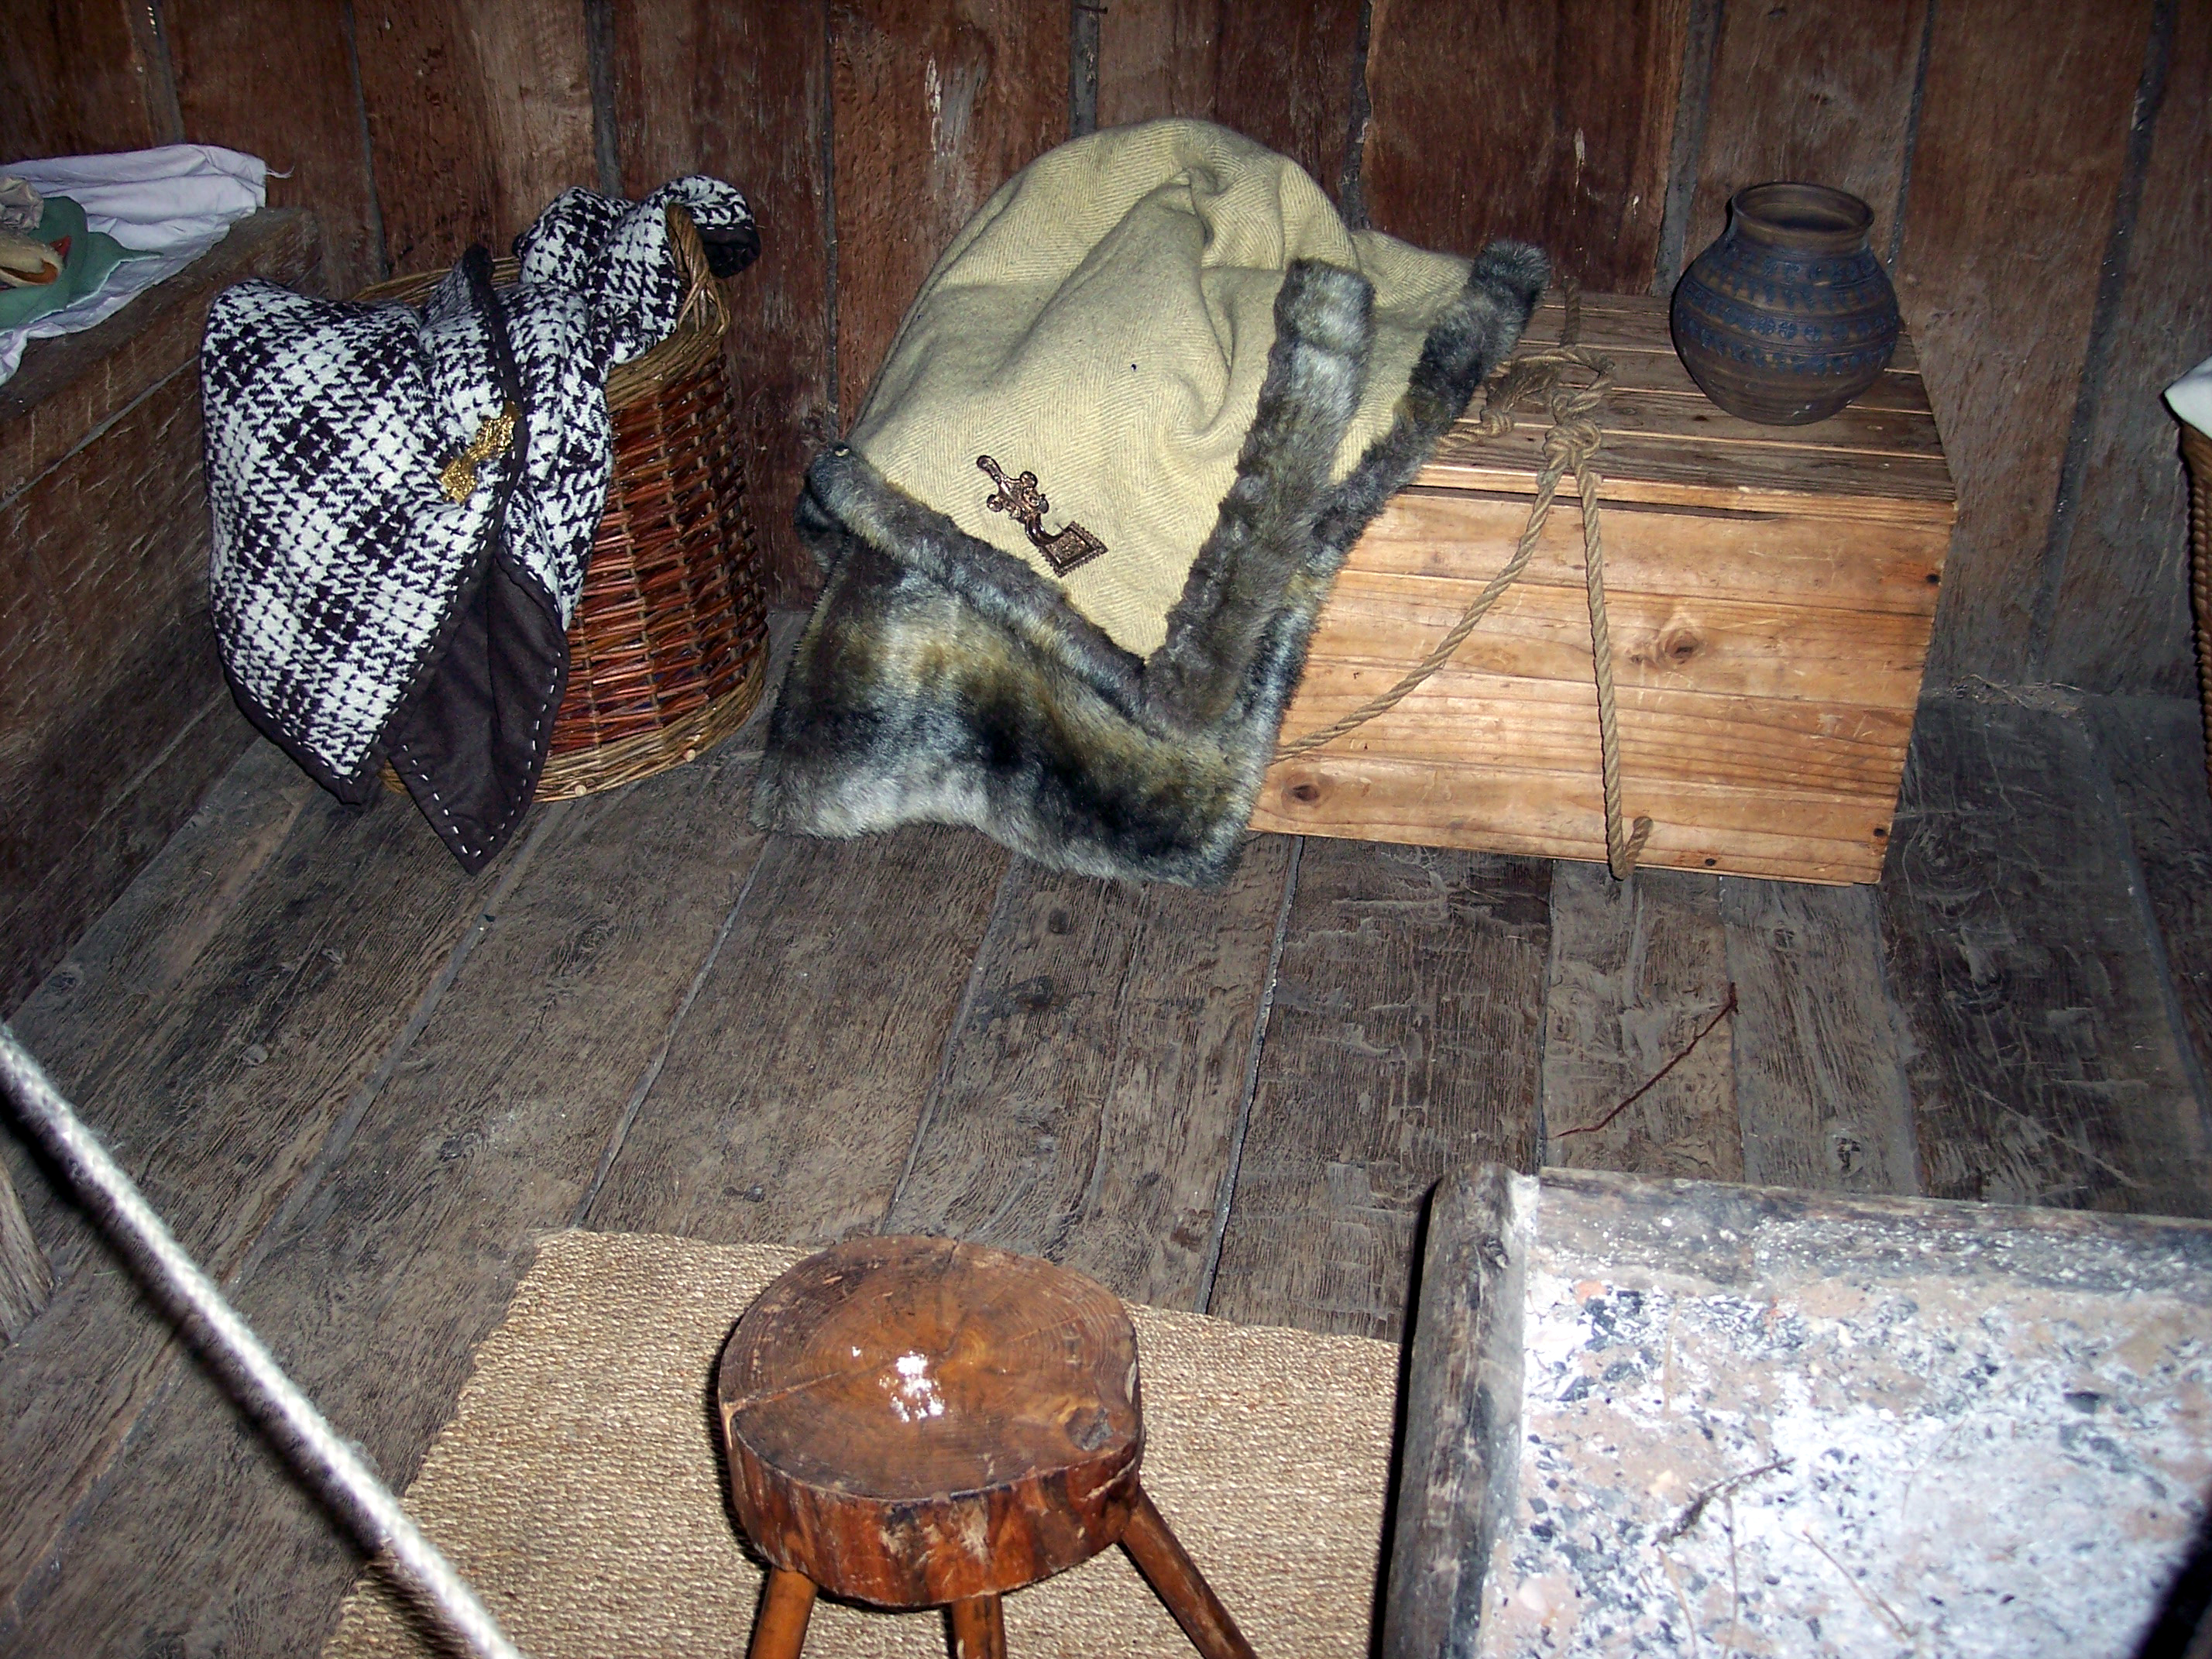 The friend house or living home was built in 1987. It is a six post house. It present ideas about the furniture and layout of those houses used as family homes. It has furnishing and fittings that may have been found in an Anglo Saxon home.  So little is known, that nobody is sure if this is an accu...